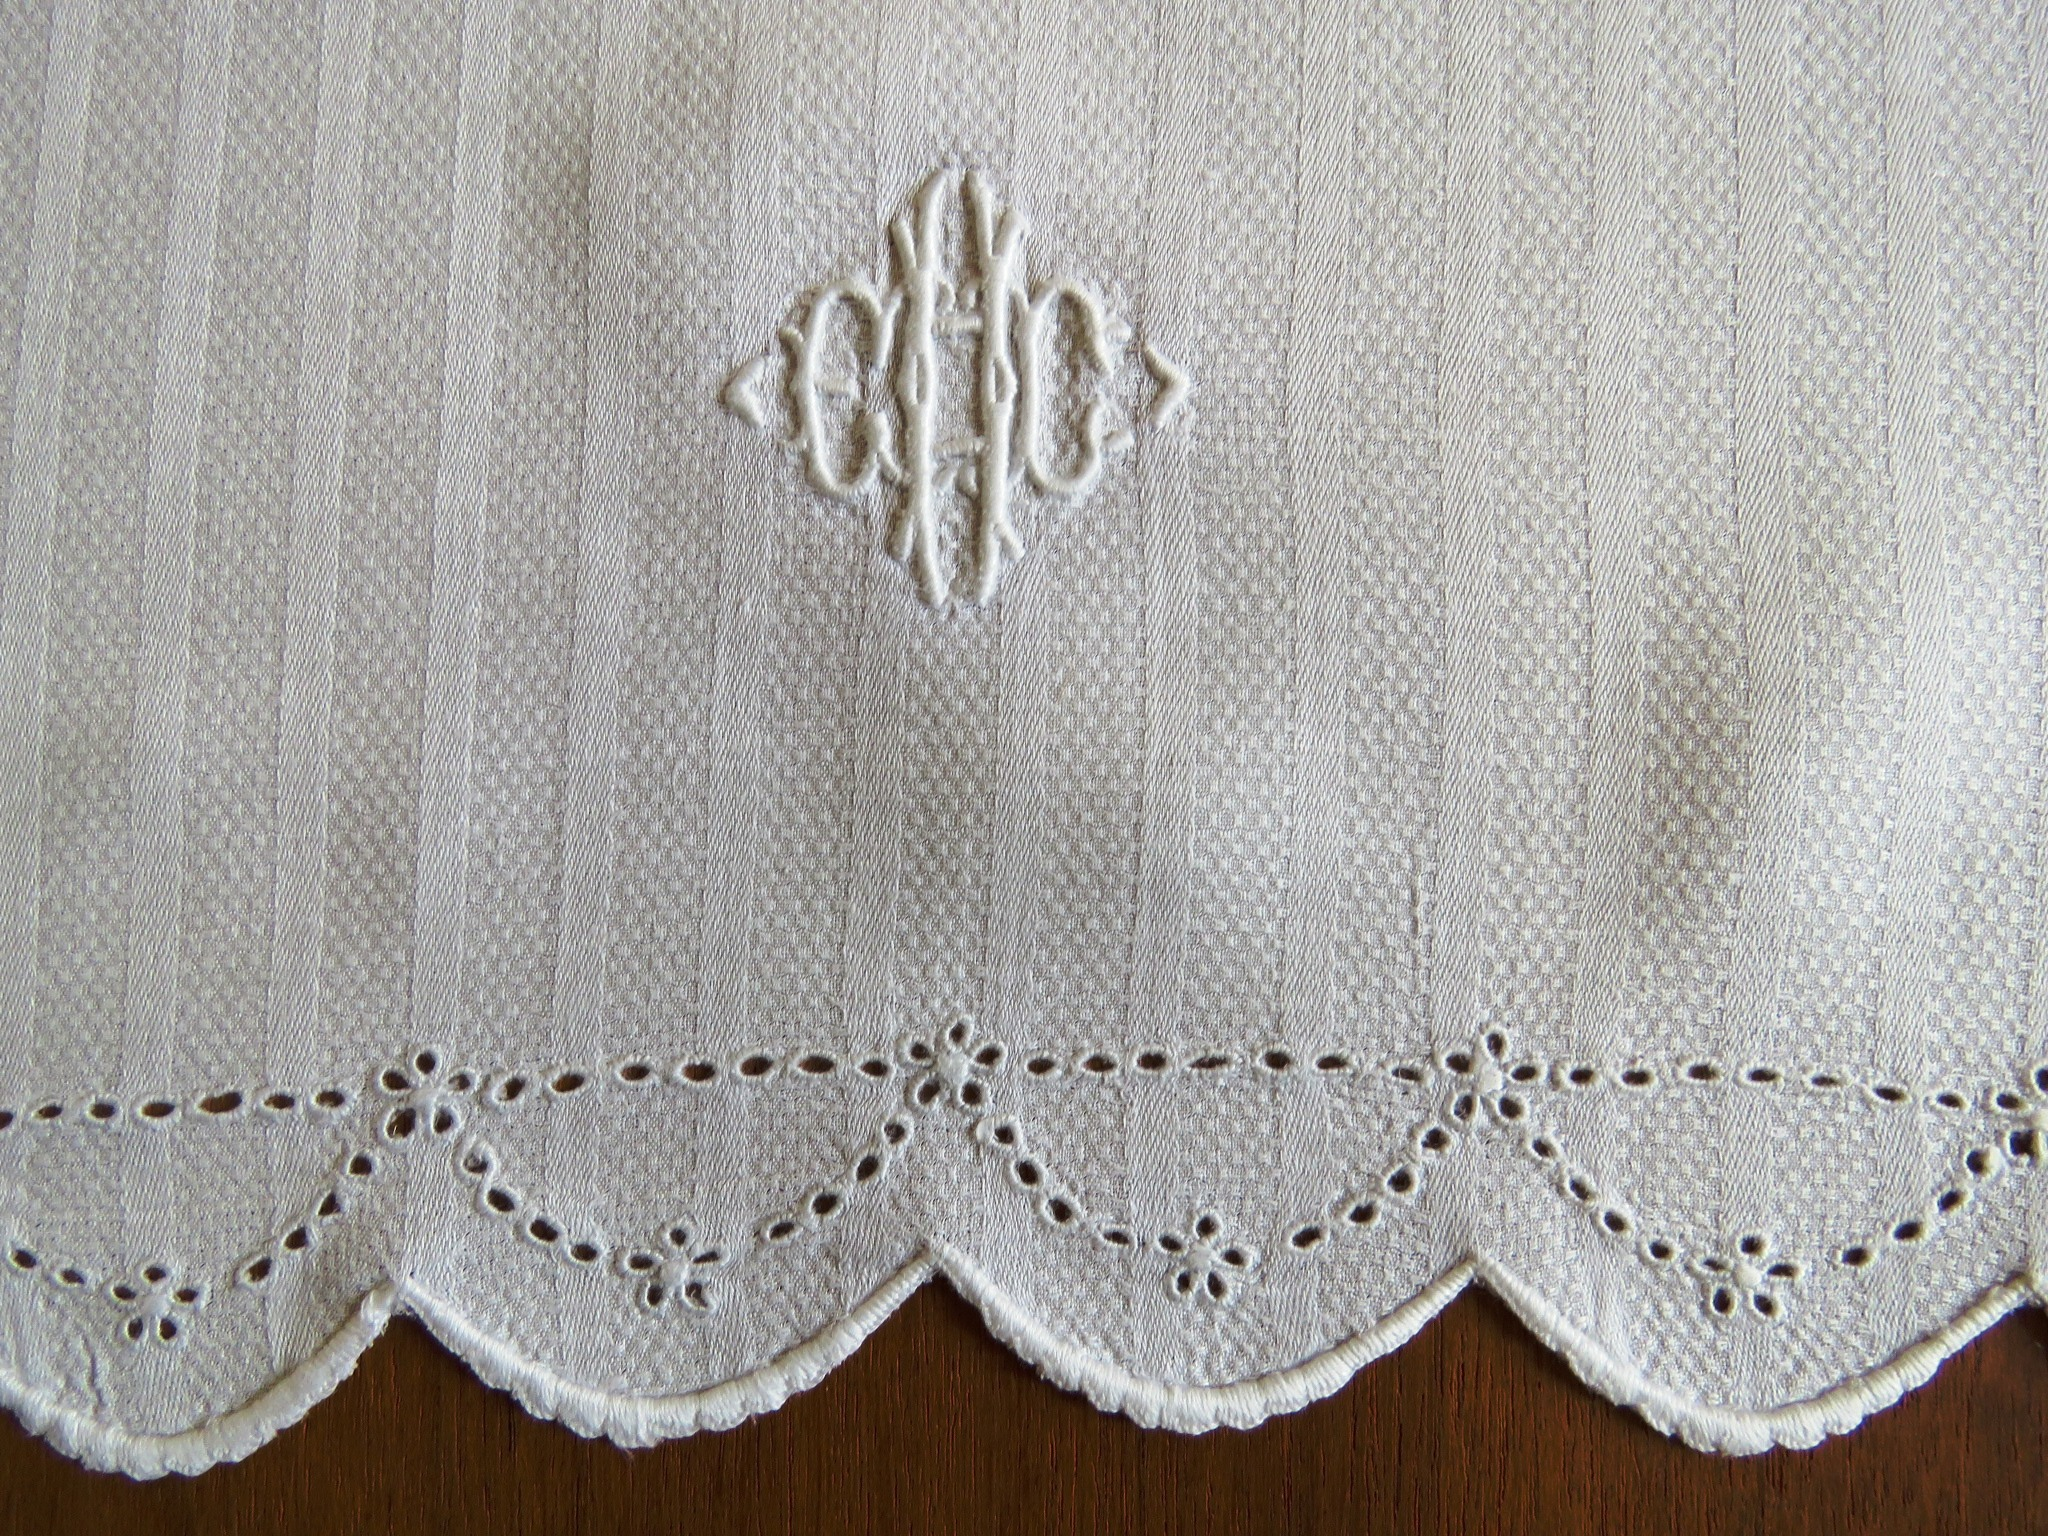 Antique Vintage Bath Towel Damask Huck Linen E H C Monongram Embroidered Cutwork (L&T-561)